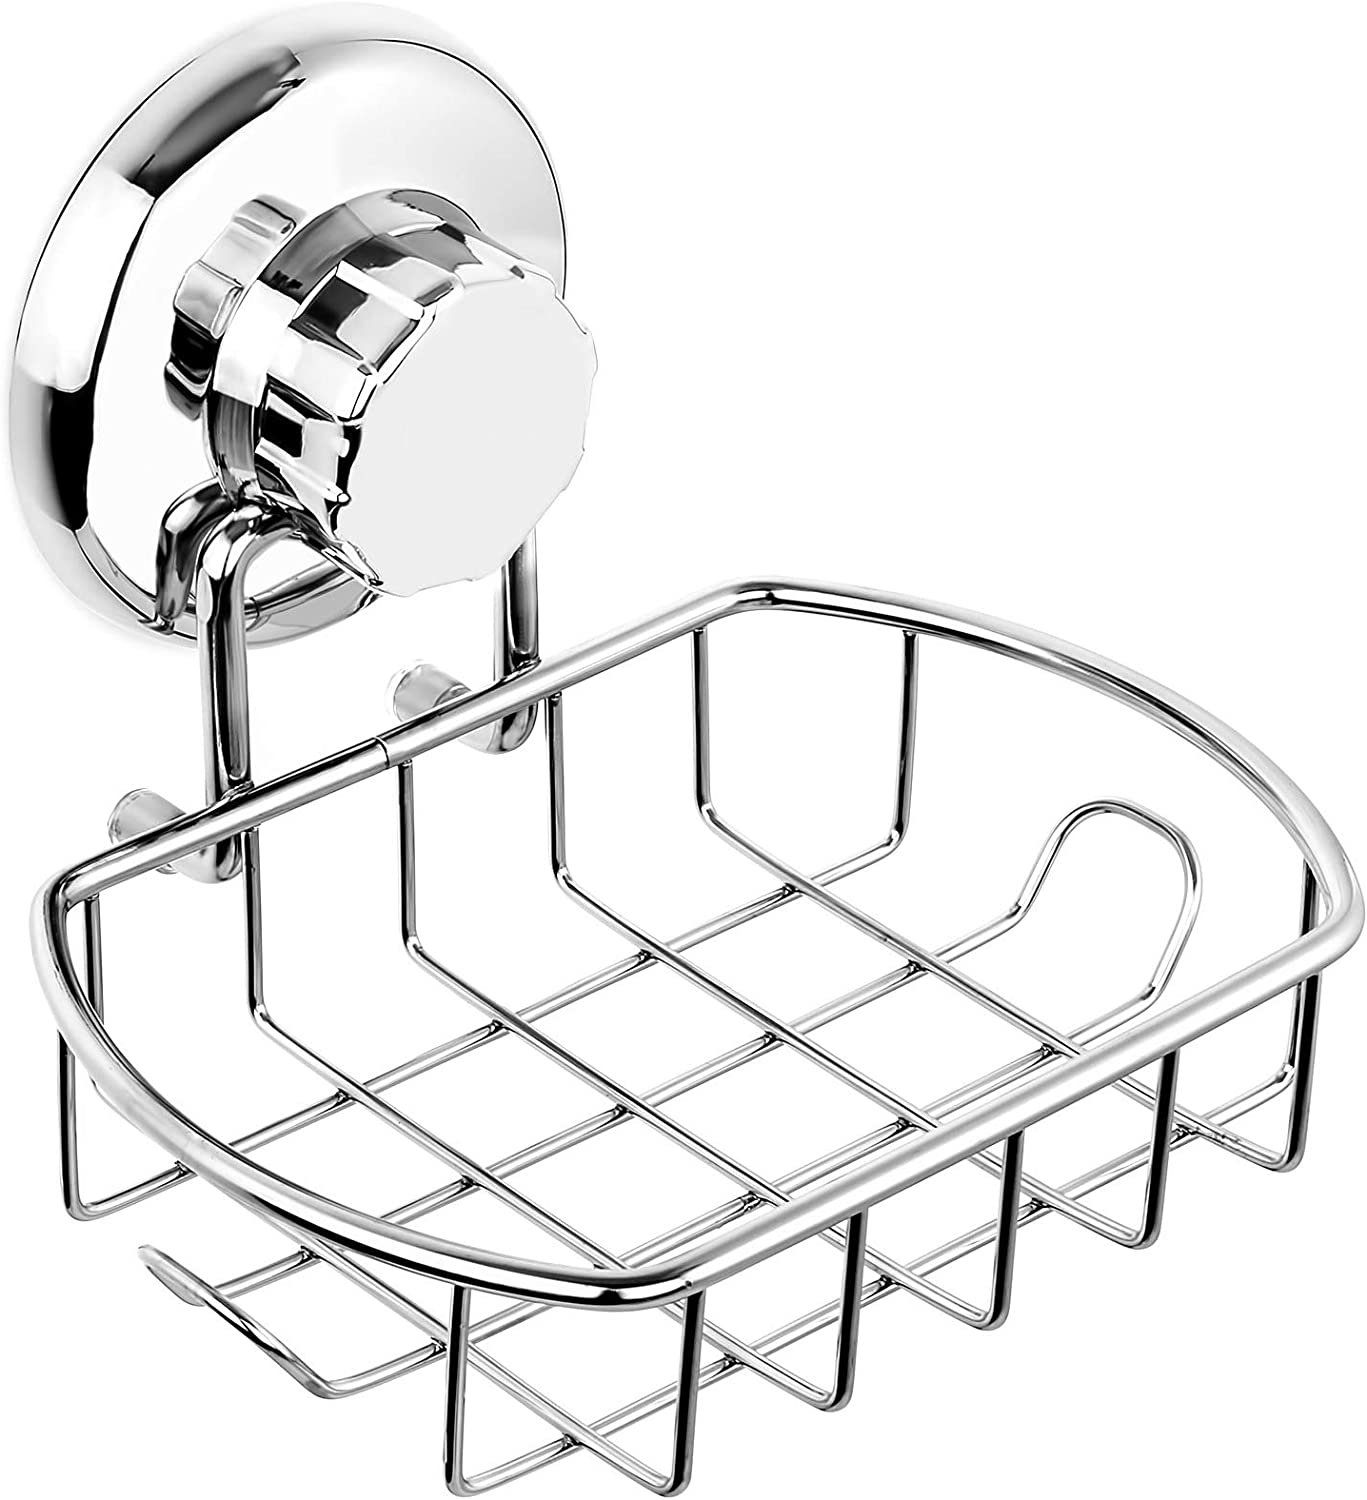 HASKO accessories Suction Soap Dish with Hooks | Powerful Vacuum Suction Cup Soap Holder | Soap Basket Sponge Holder for Bathroom & Kitchen (Polished Stainless Steel SS304)